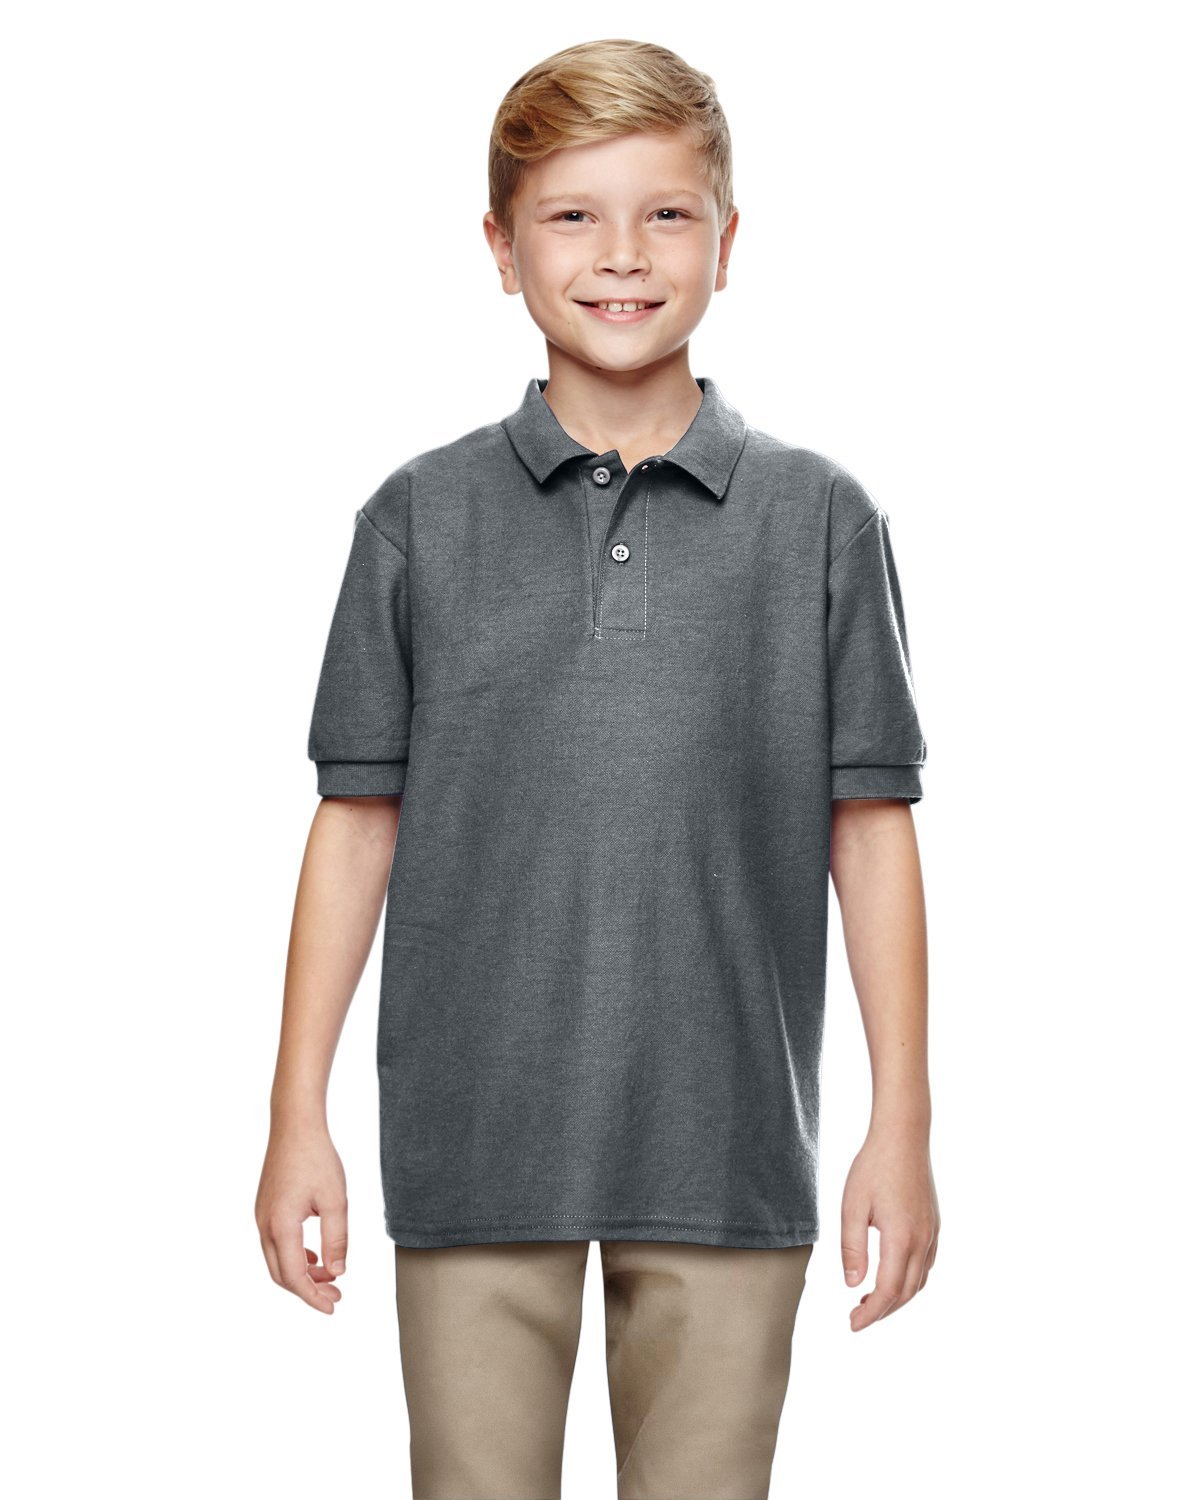 Gildan Boys DryBlend 6.3 oz. Double Piqué Sport Shirt (G728B) -Dark Heath -S-12PK by Gildan (Image #2)